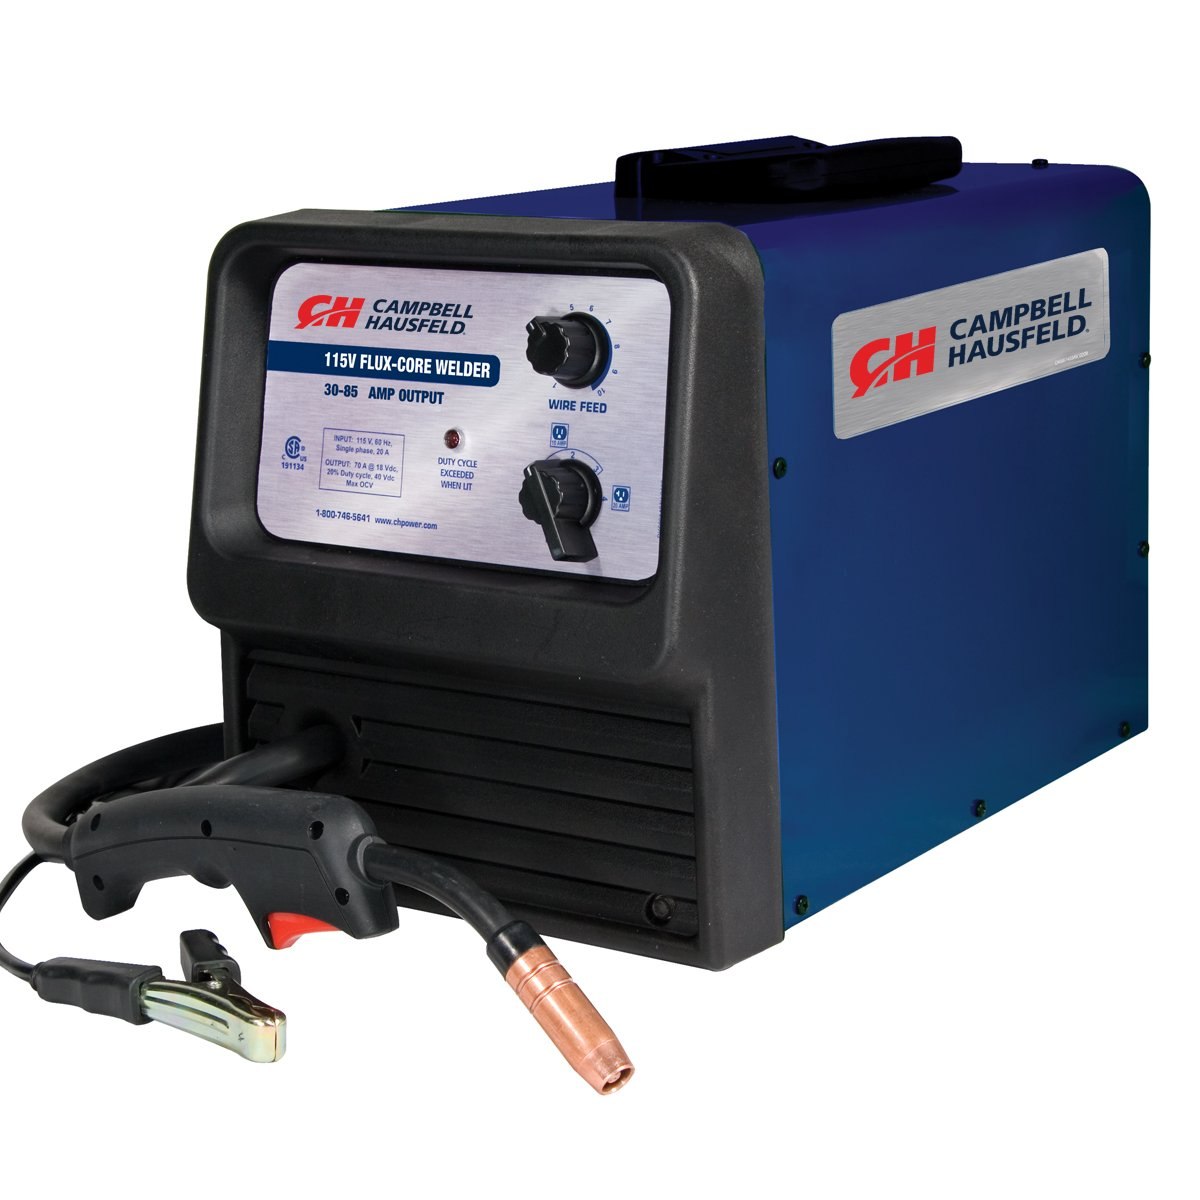 Flex Core Welder, 115 Volt, 70 Amps, Portable, Thermal Overload Protection,  Infinite Wire Feed (Campbell Hausfeld WF215001AV)   Power Welders    Amazon.com